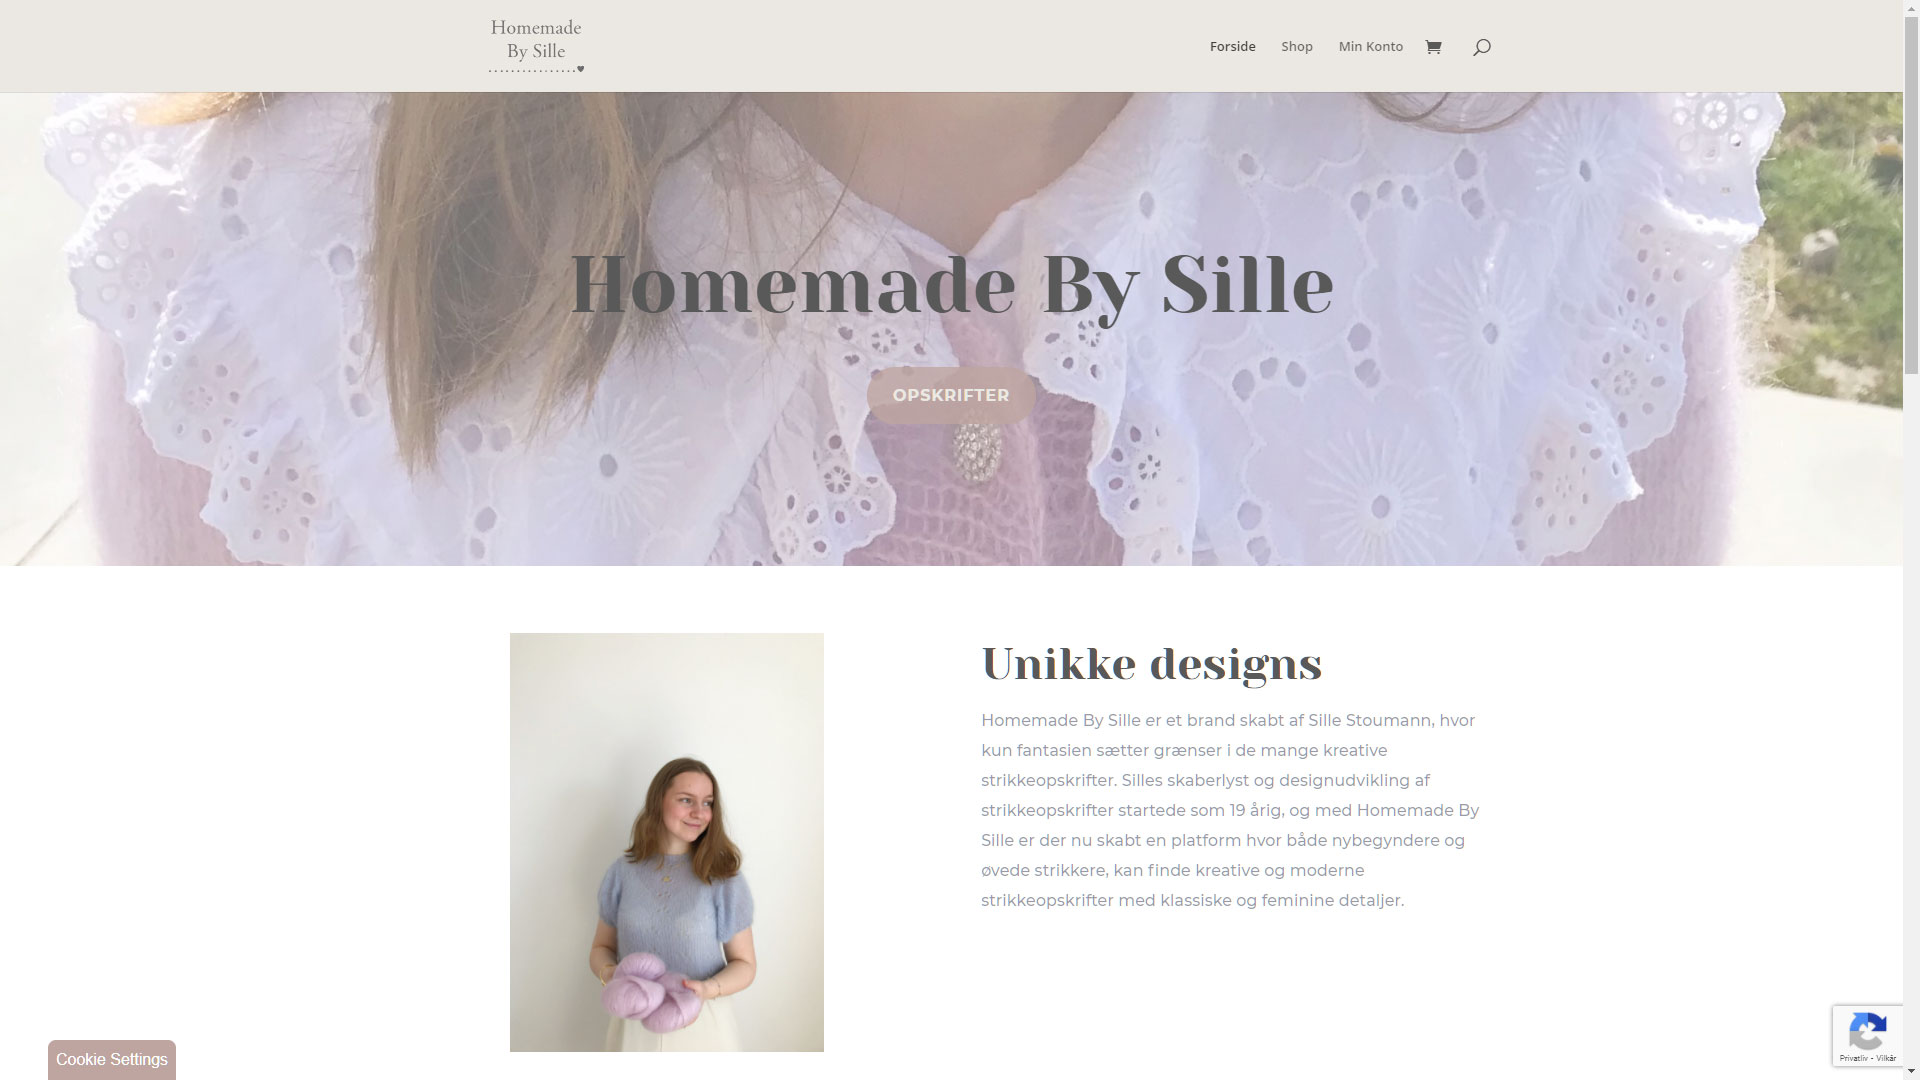 Homemade By Sille webshop